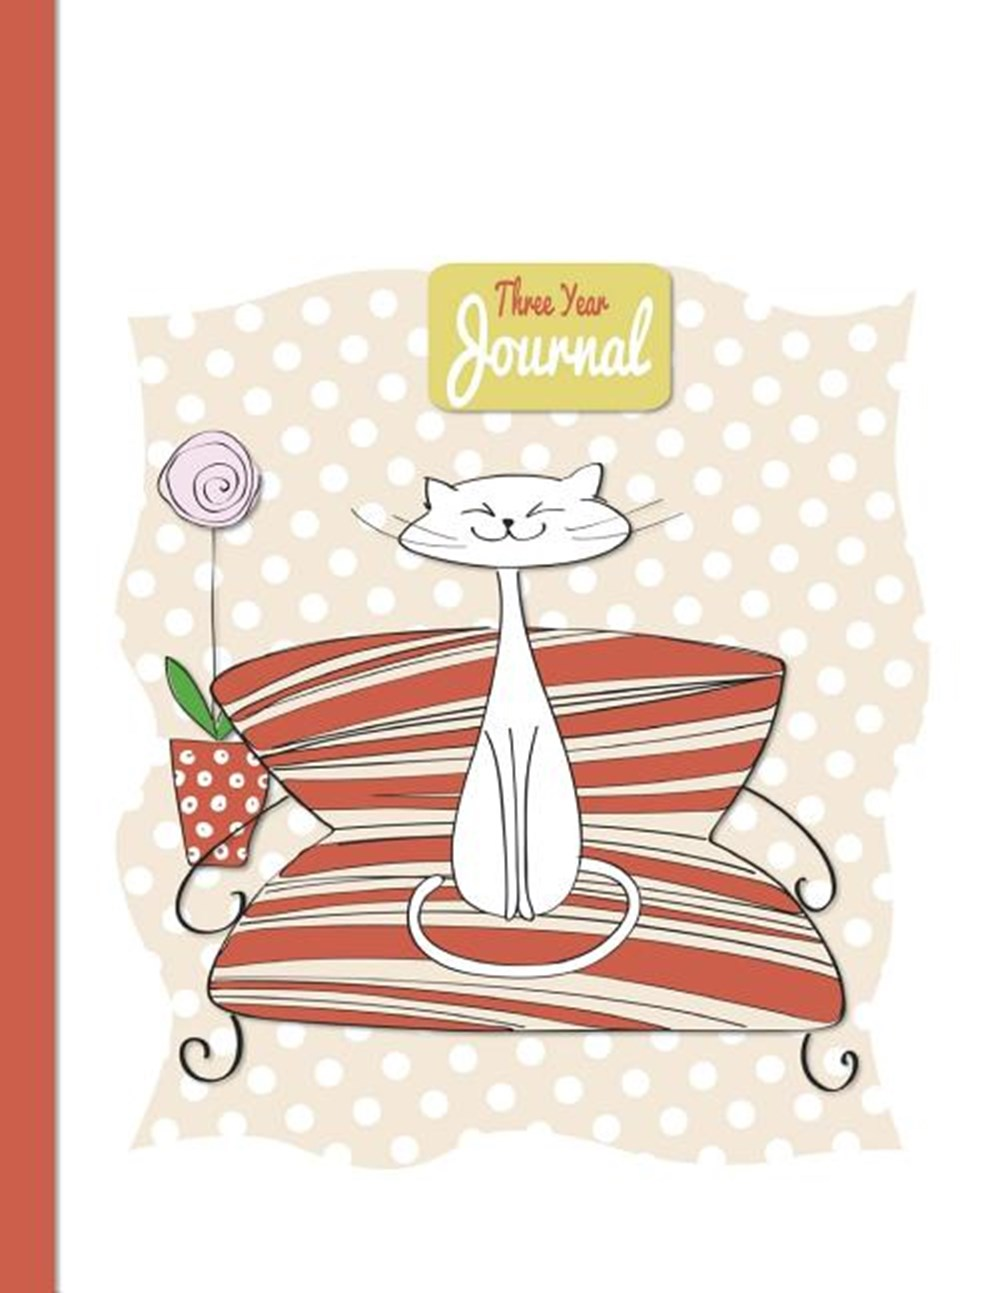 3 Year Journal 8.5x 11 Paperback Undated Perpetual Planner 150 Pages